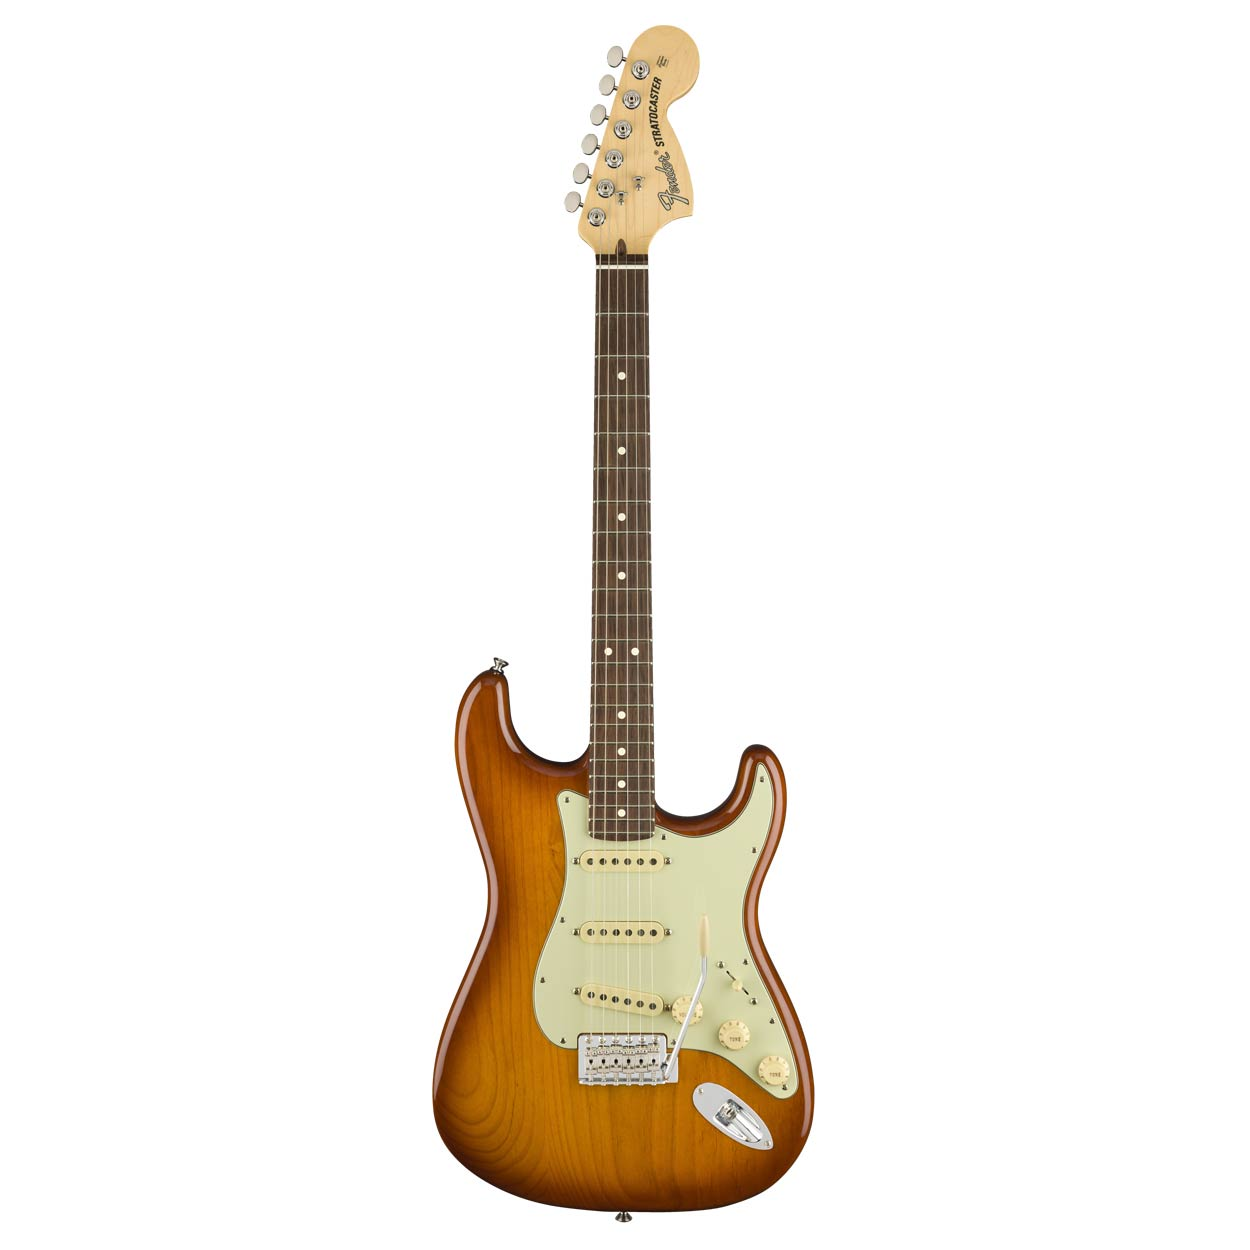 Fender American Performer Stratocaster RW HB - Guitarra eléctrica